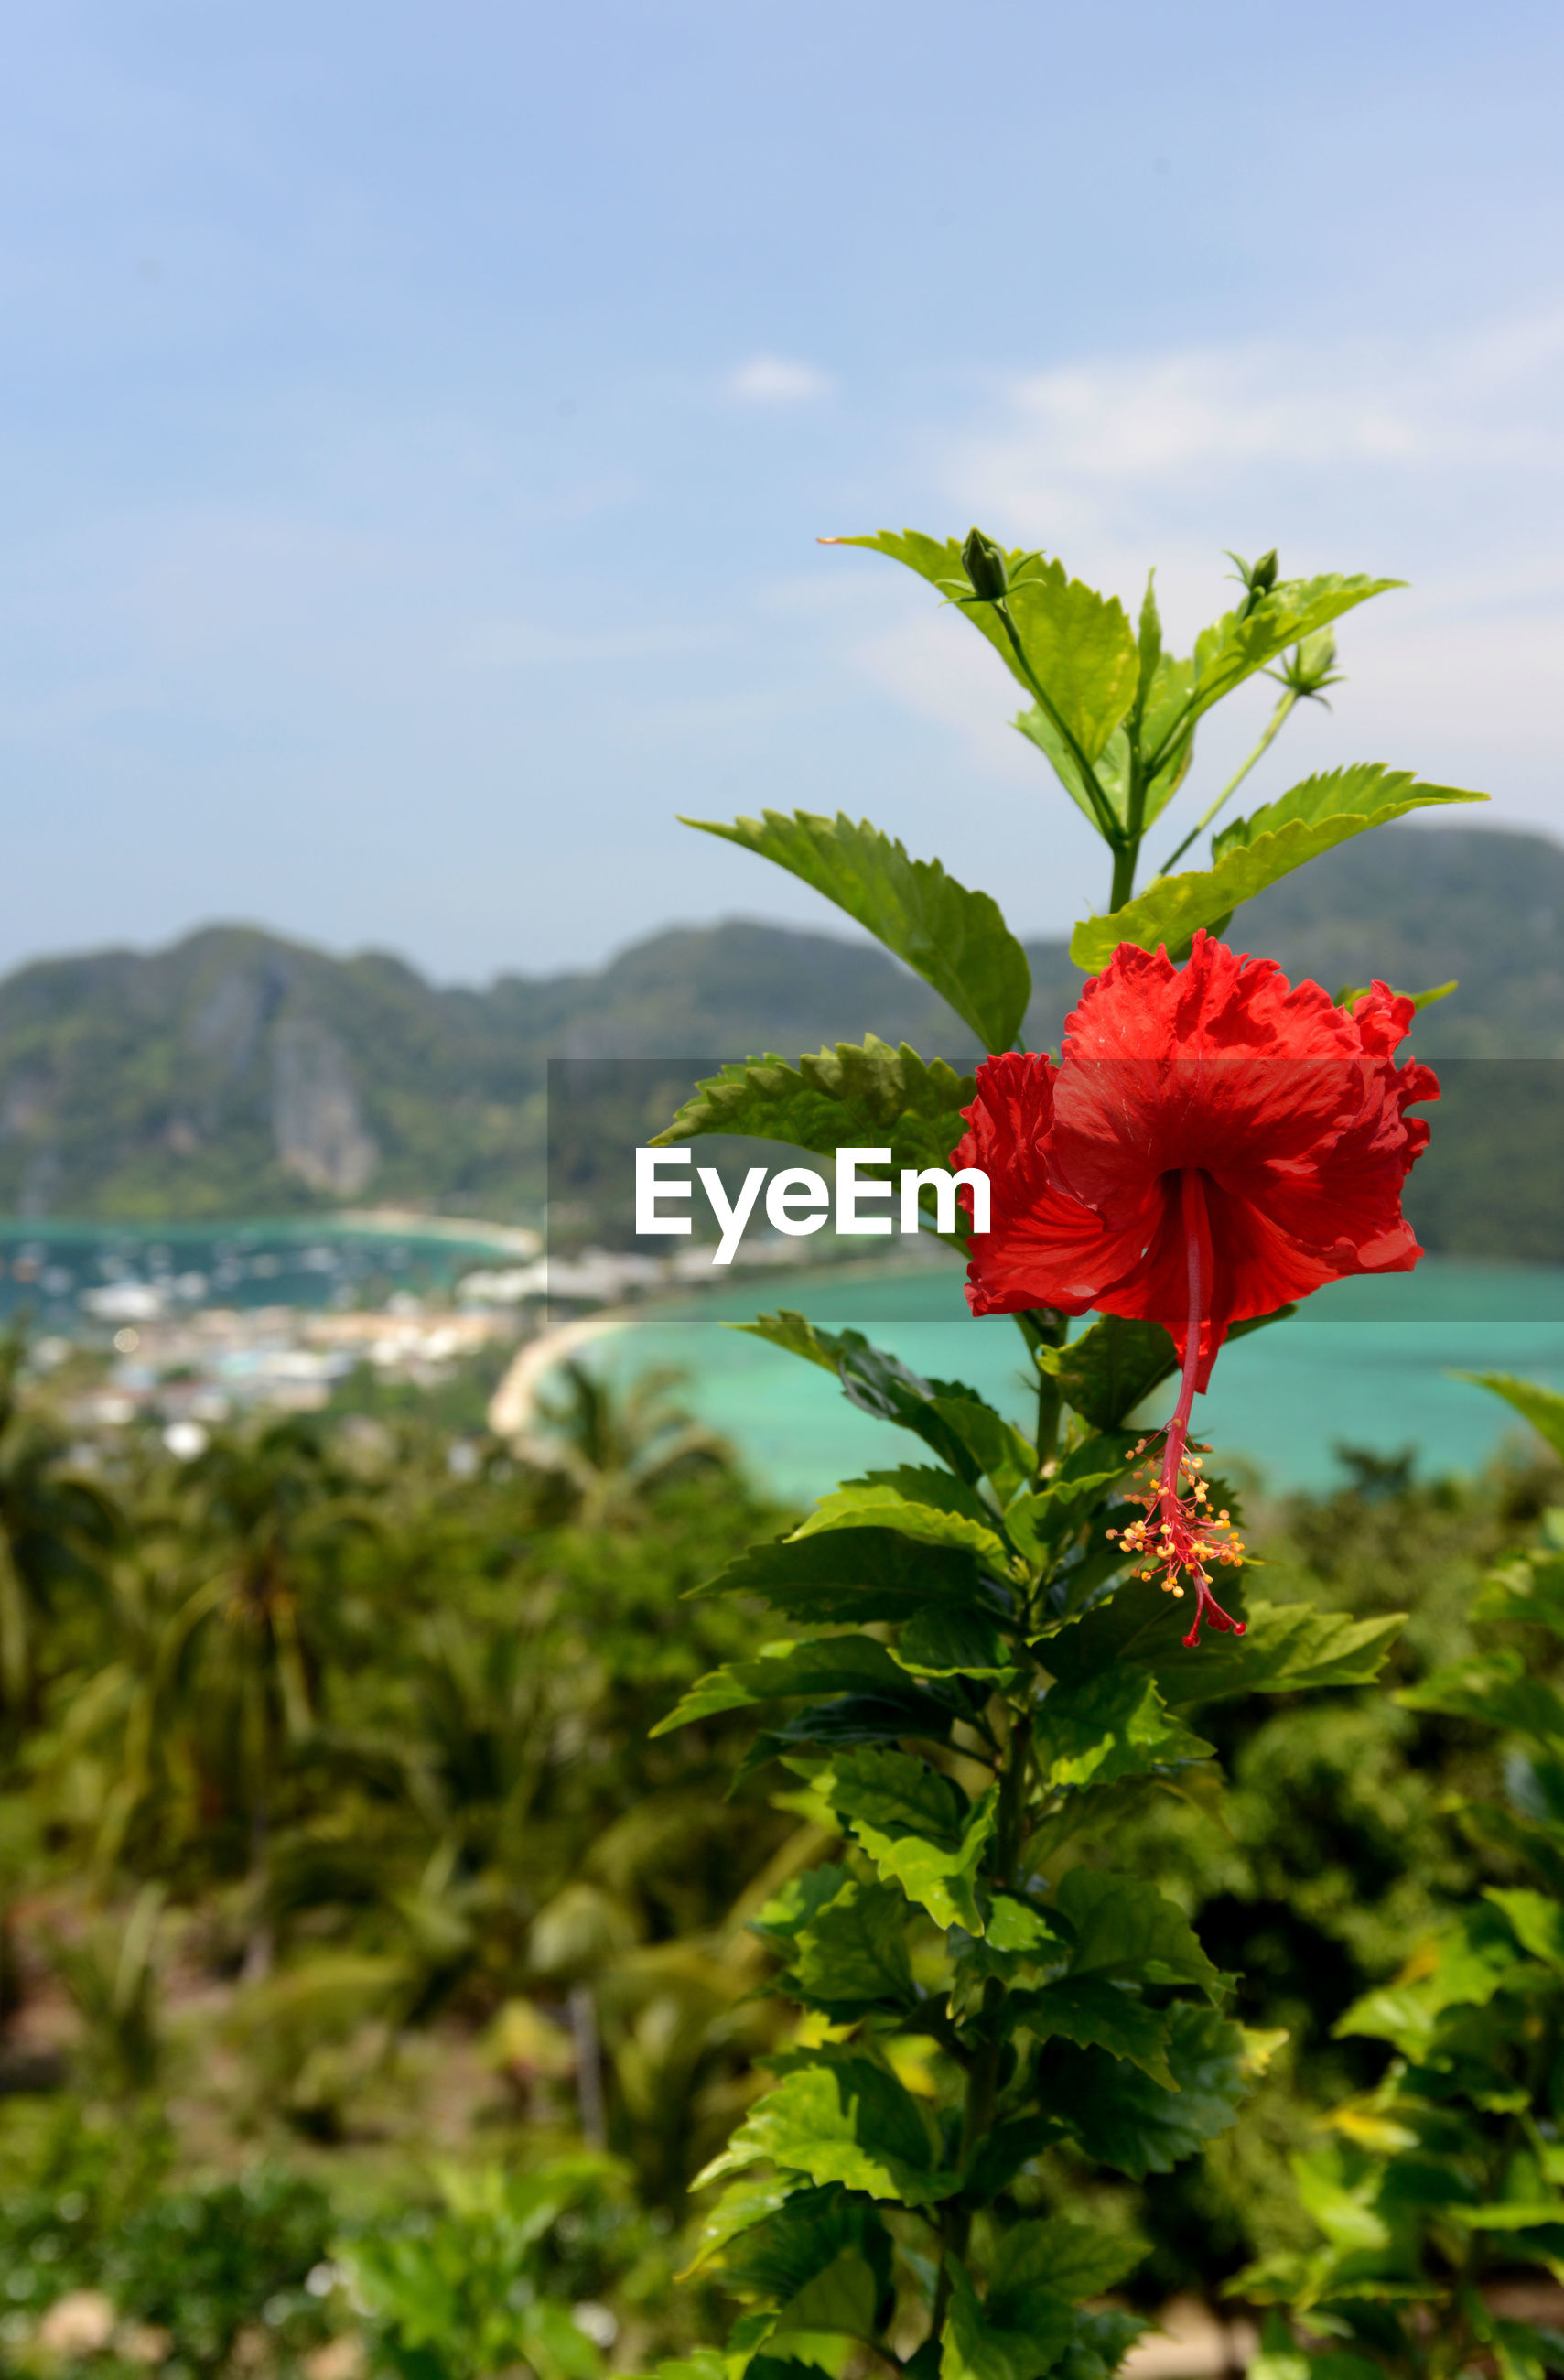 beauty in nature, flower, nature, growth, red, green color, fragility, plant, focus on foreground, day, freshness, outdoors, hibiscus, no people, flower head, blooming, leaf, close-up, zinnia